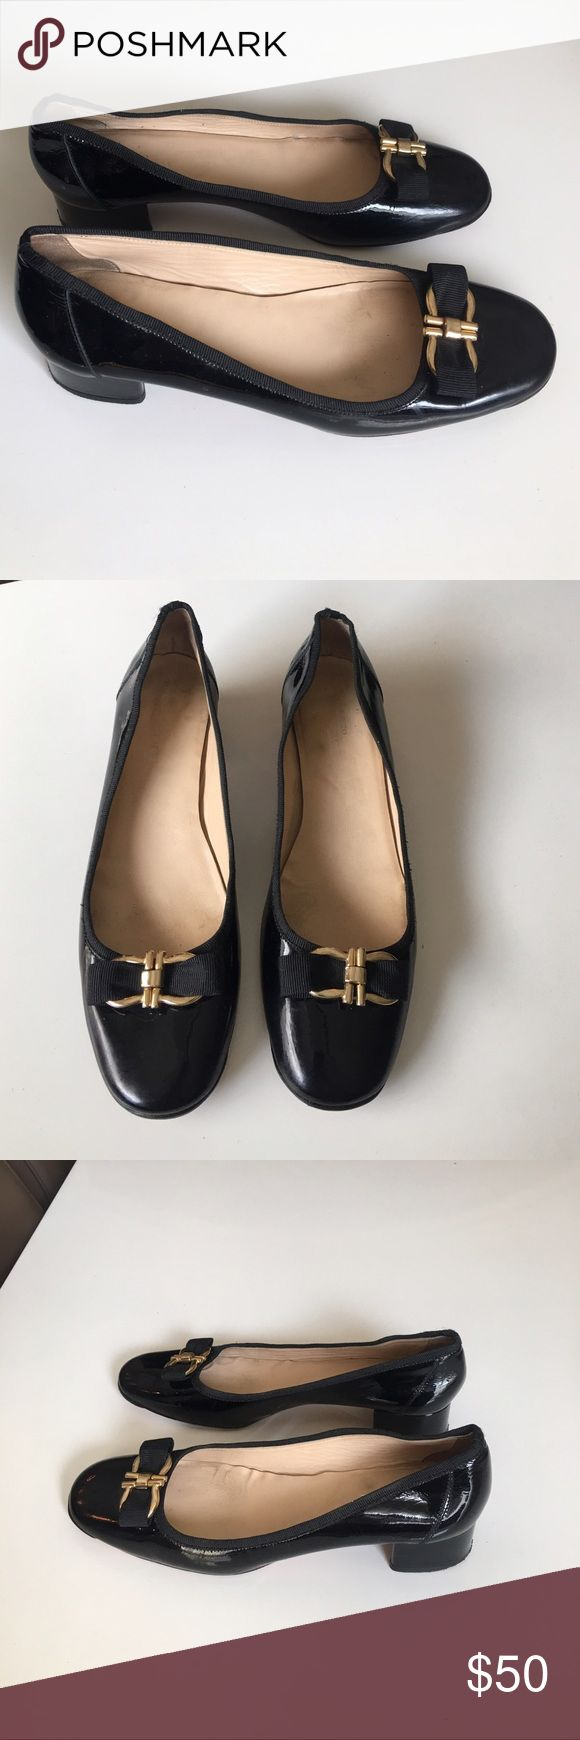 Sesto Meucci signature black leather flats sz 10 Sesto Meucci signature black patent leather flats sz 10 good condition light scuffs and insoles have some marks Sesto Meucci Shoes Flats & Loafers